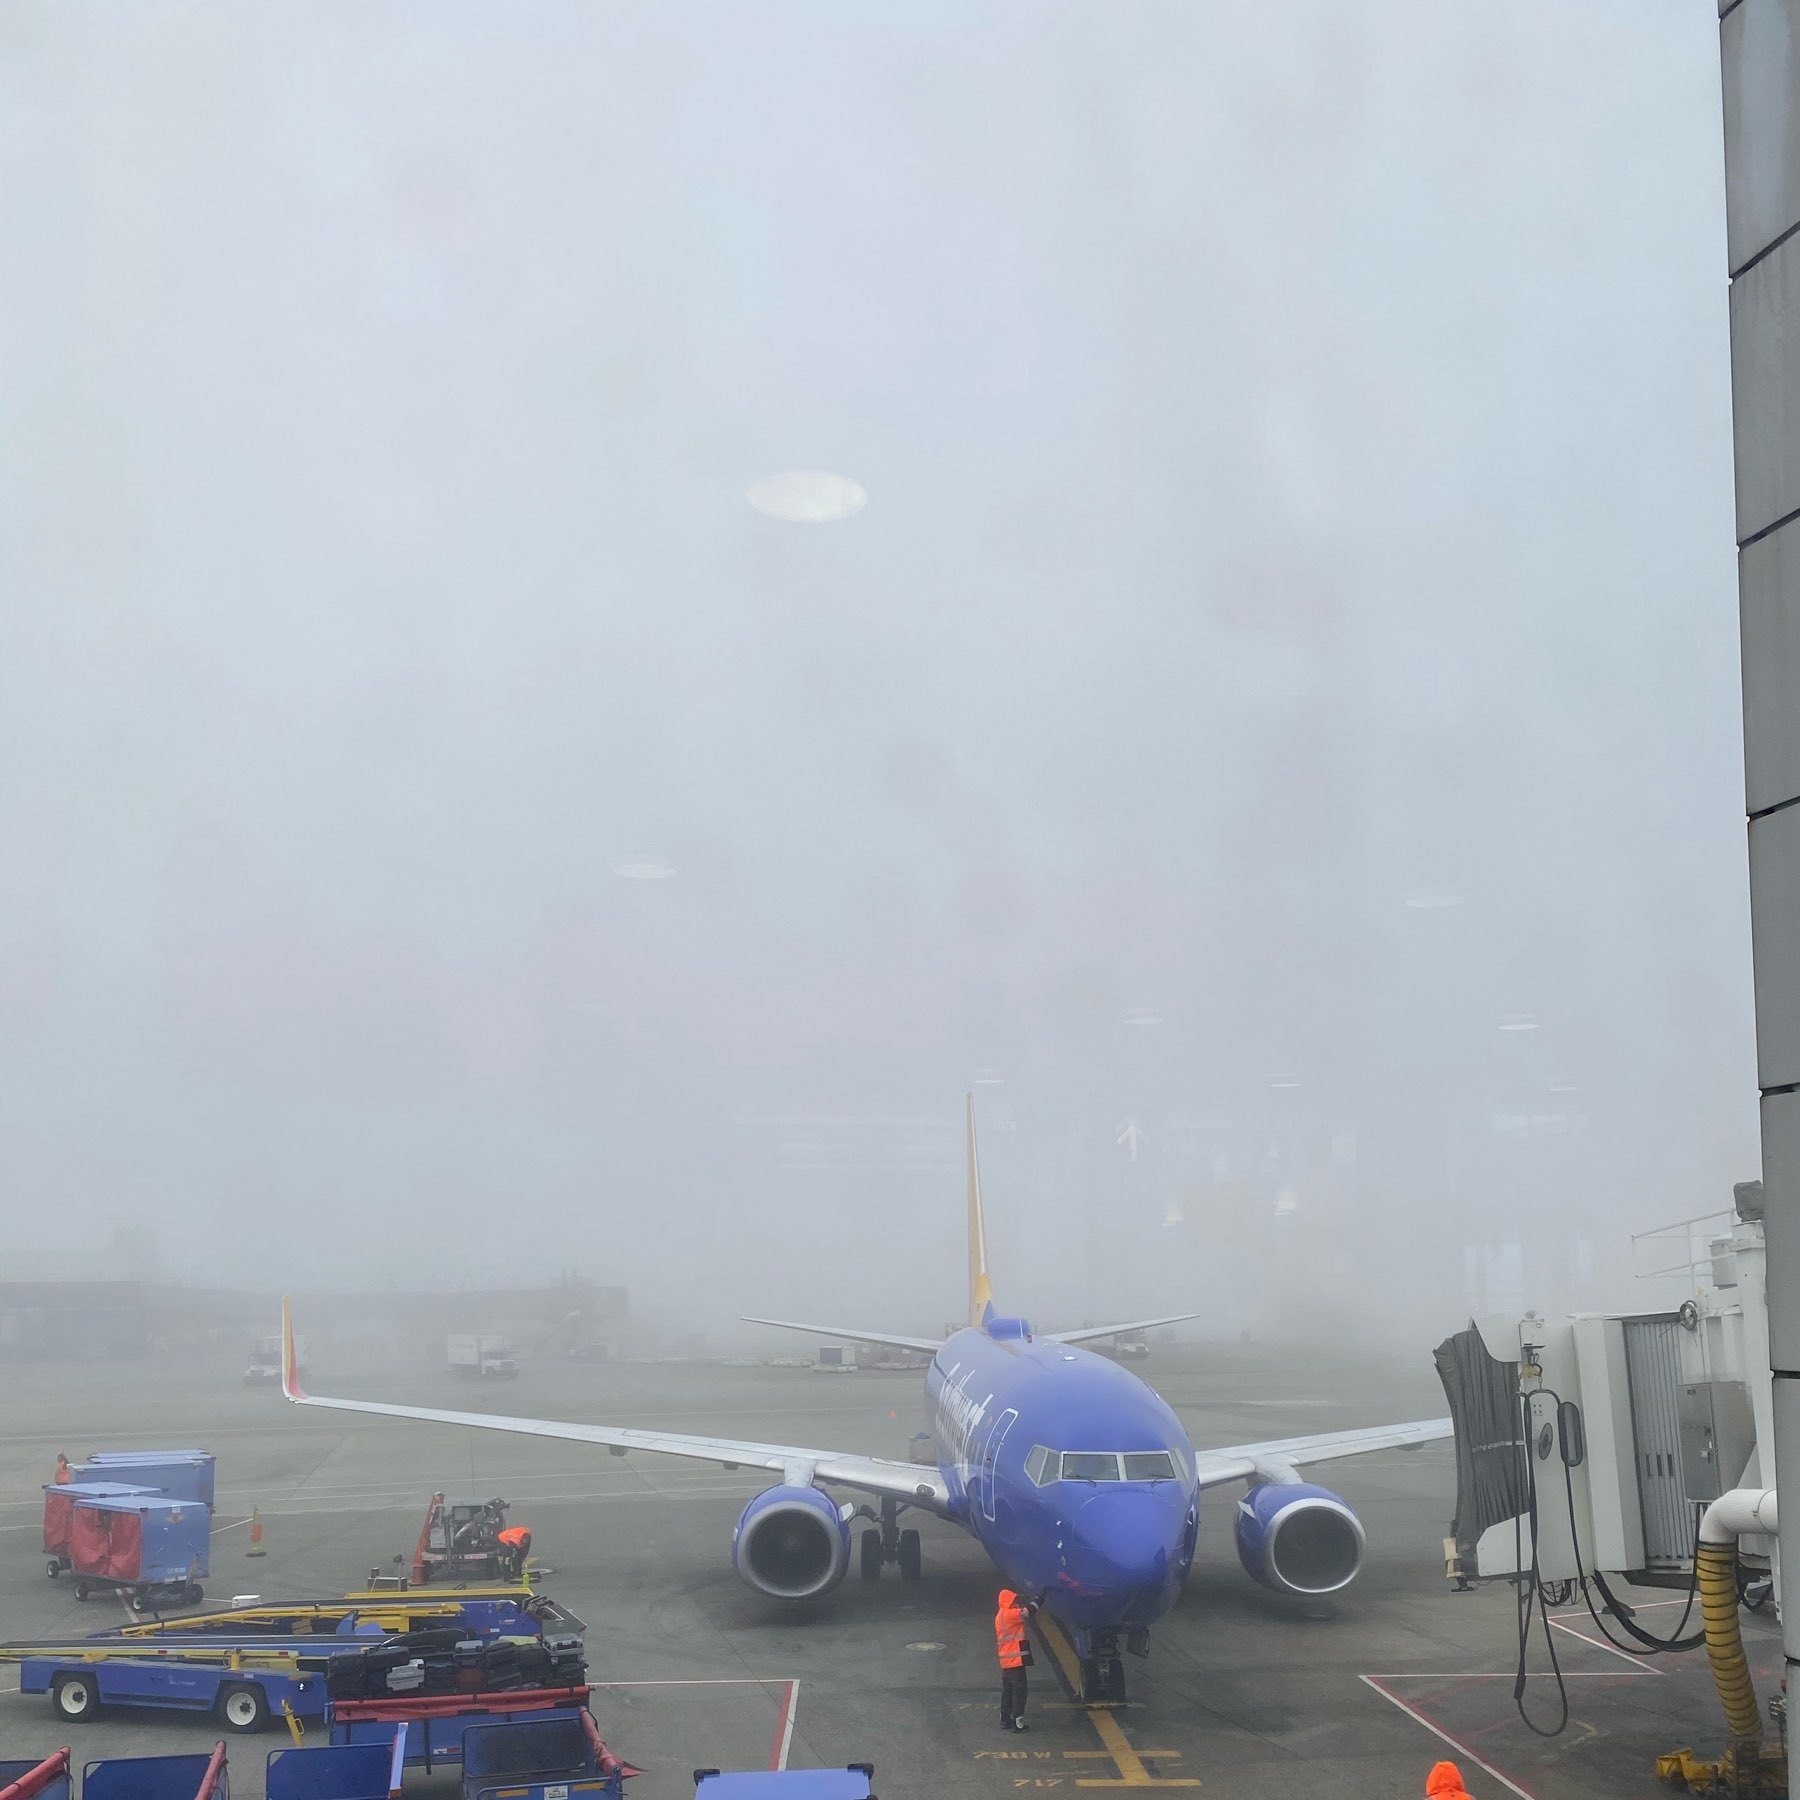 A Southwest Airlines 737 pulls up to the gate under heavy fog that obscures the view past 200 or so feet.